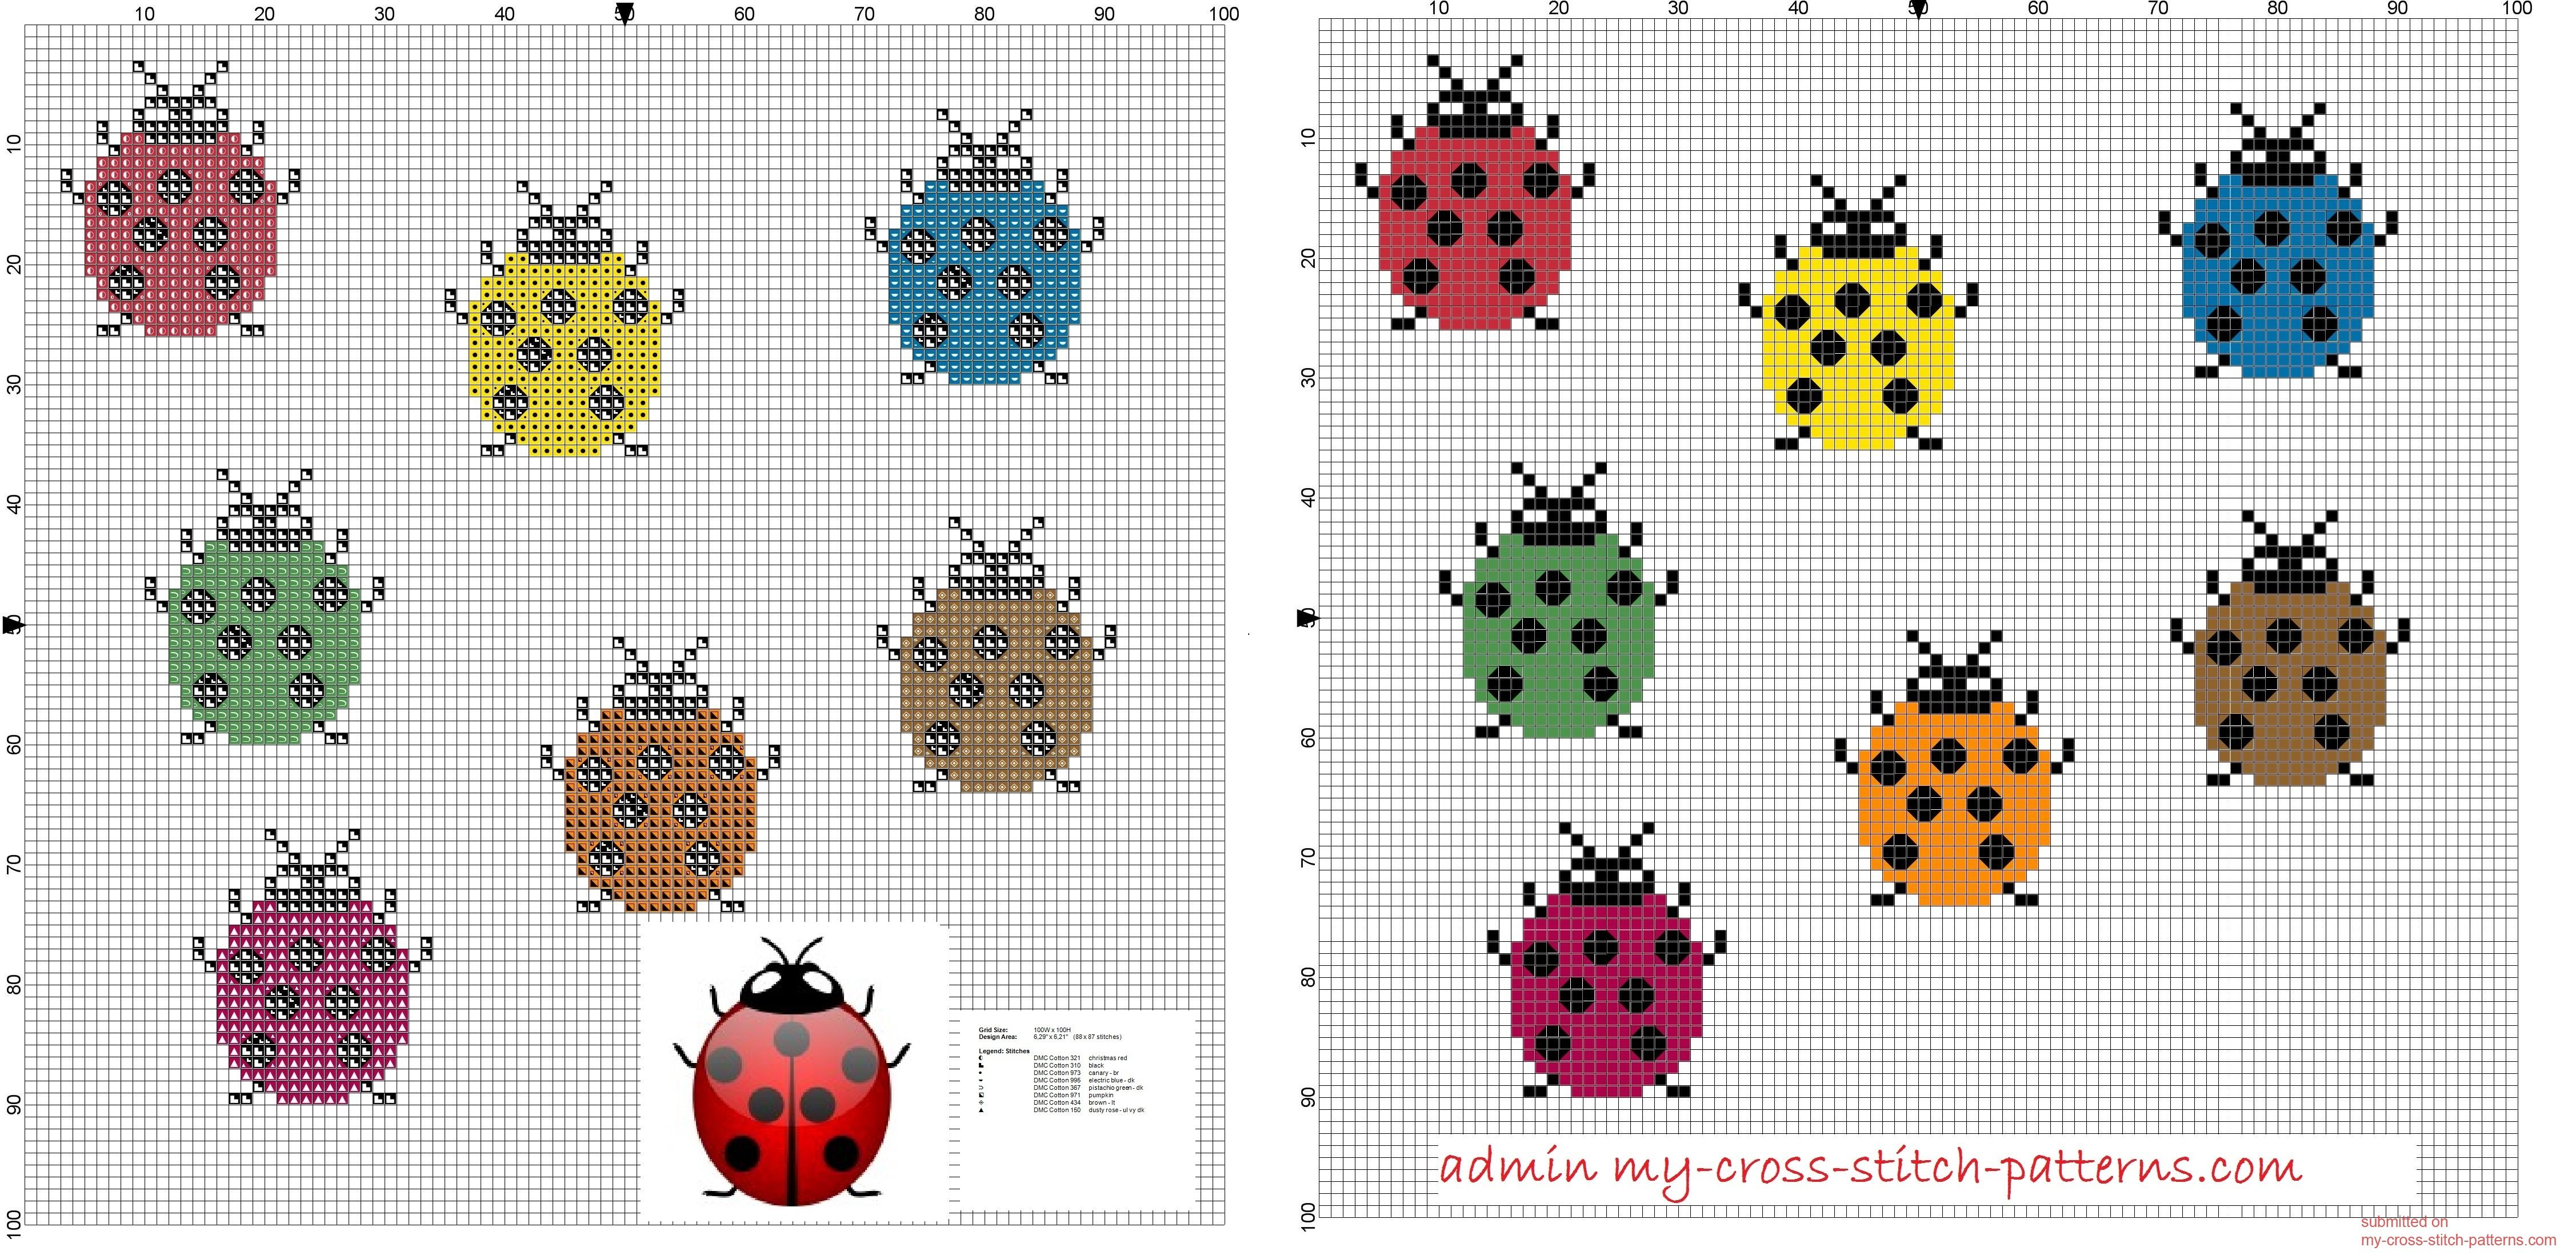 Share Your Software Created Cross Stitch Patterns Description From My Cross Stitch Patterns C Simple Cross Stitch Dmc Cross Stitch Cross Stitch Patterns Free